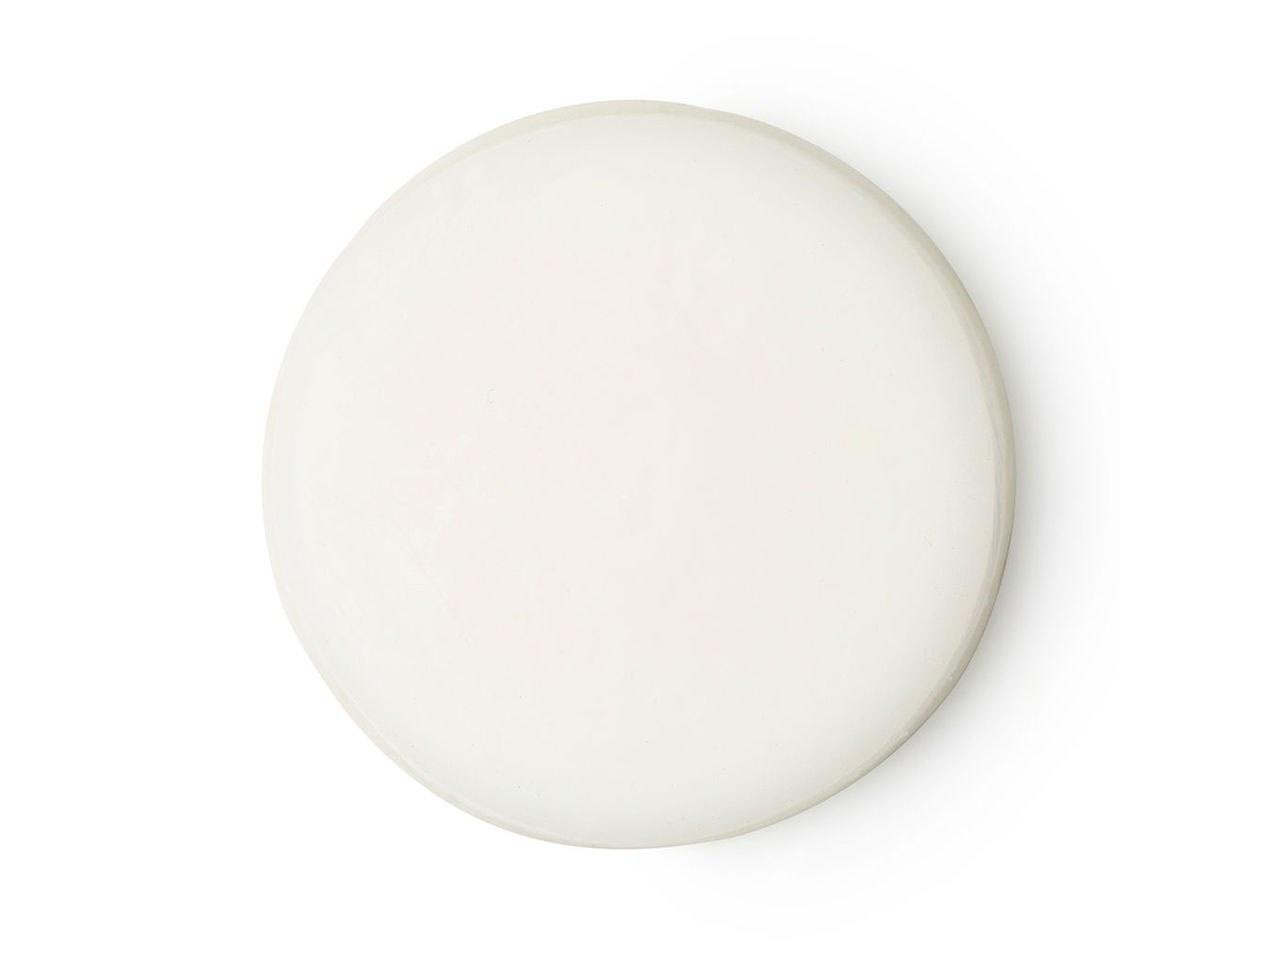 """<p>I've tried using classic tea tree oil toners on my face and they always seem to leave my skin feeling stripped and dry. But this naked cleansing balm is more like an oil cleanser, meaning it makes my skin feel super clean but also soft and moisturized after using it. Plus, I love that it comes without any unnecessary packaging!</p> <p><strong>Buy it:</strong> $6, <a href=""""https://www.lushusa.com/face/cleansers/tea-totaler/08731.html"""" rel=""""nofollow"""">lushusa.com</a></p>"""